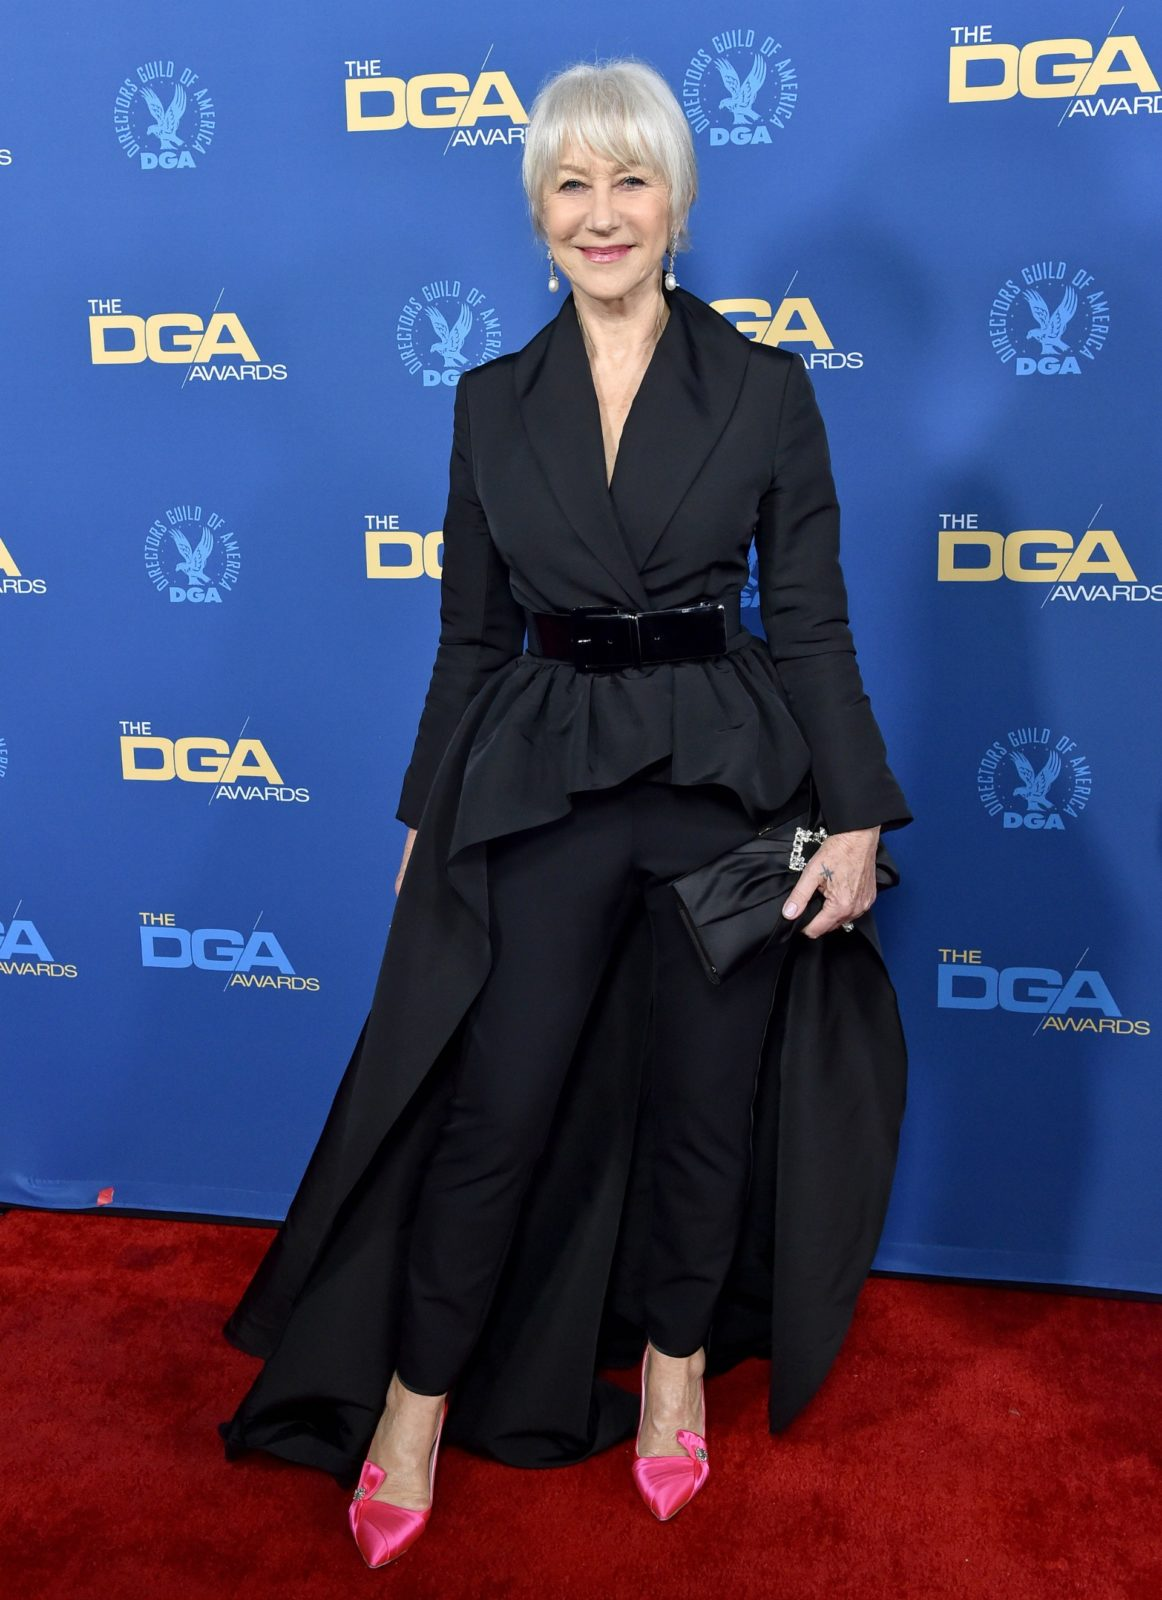 Helen Mirren wowed in an all-black outfit at the 71st Annual Directors Guild of America Awards in Hollywood.